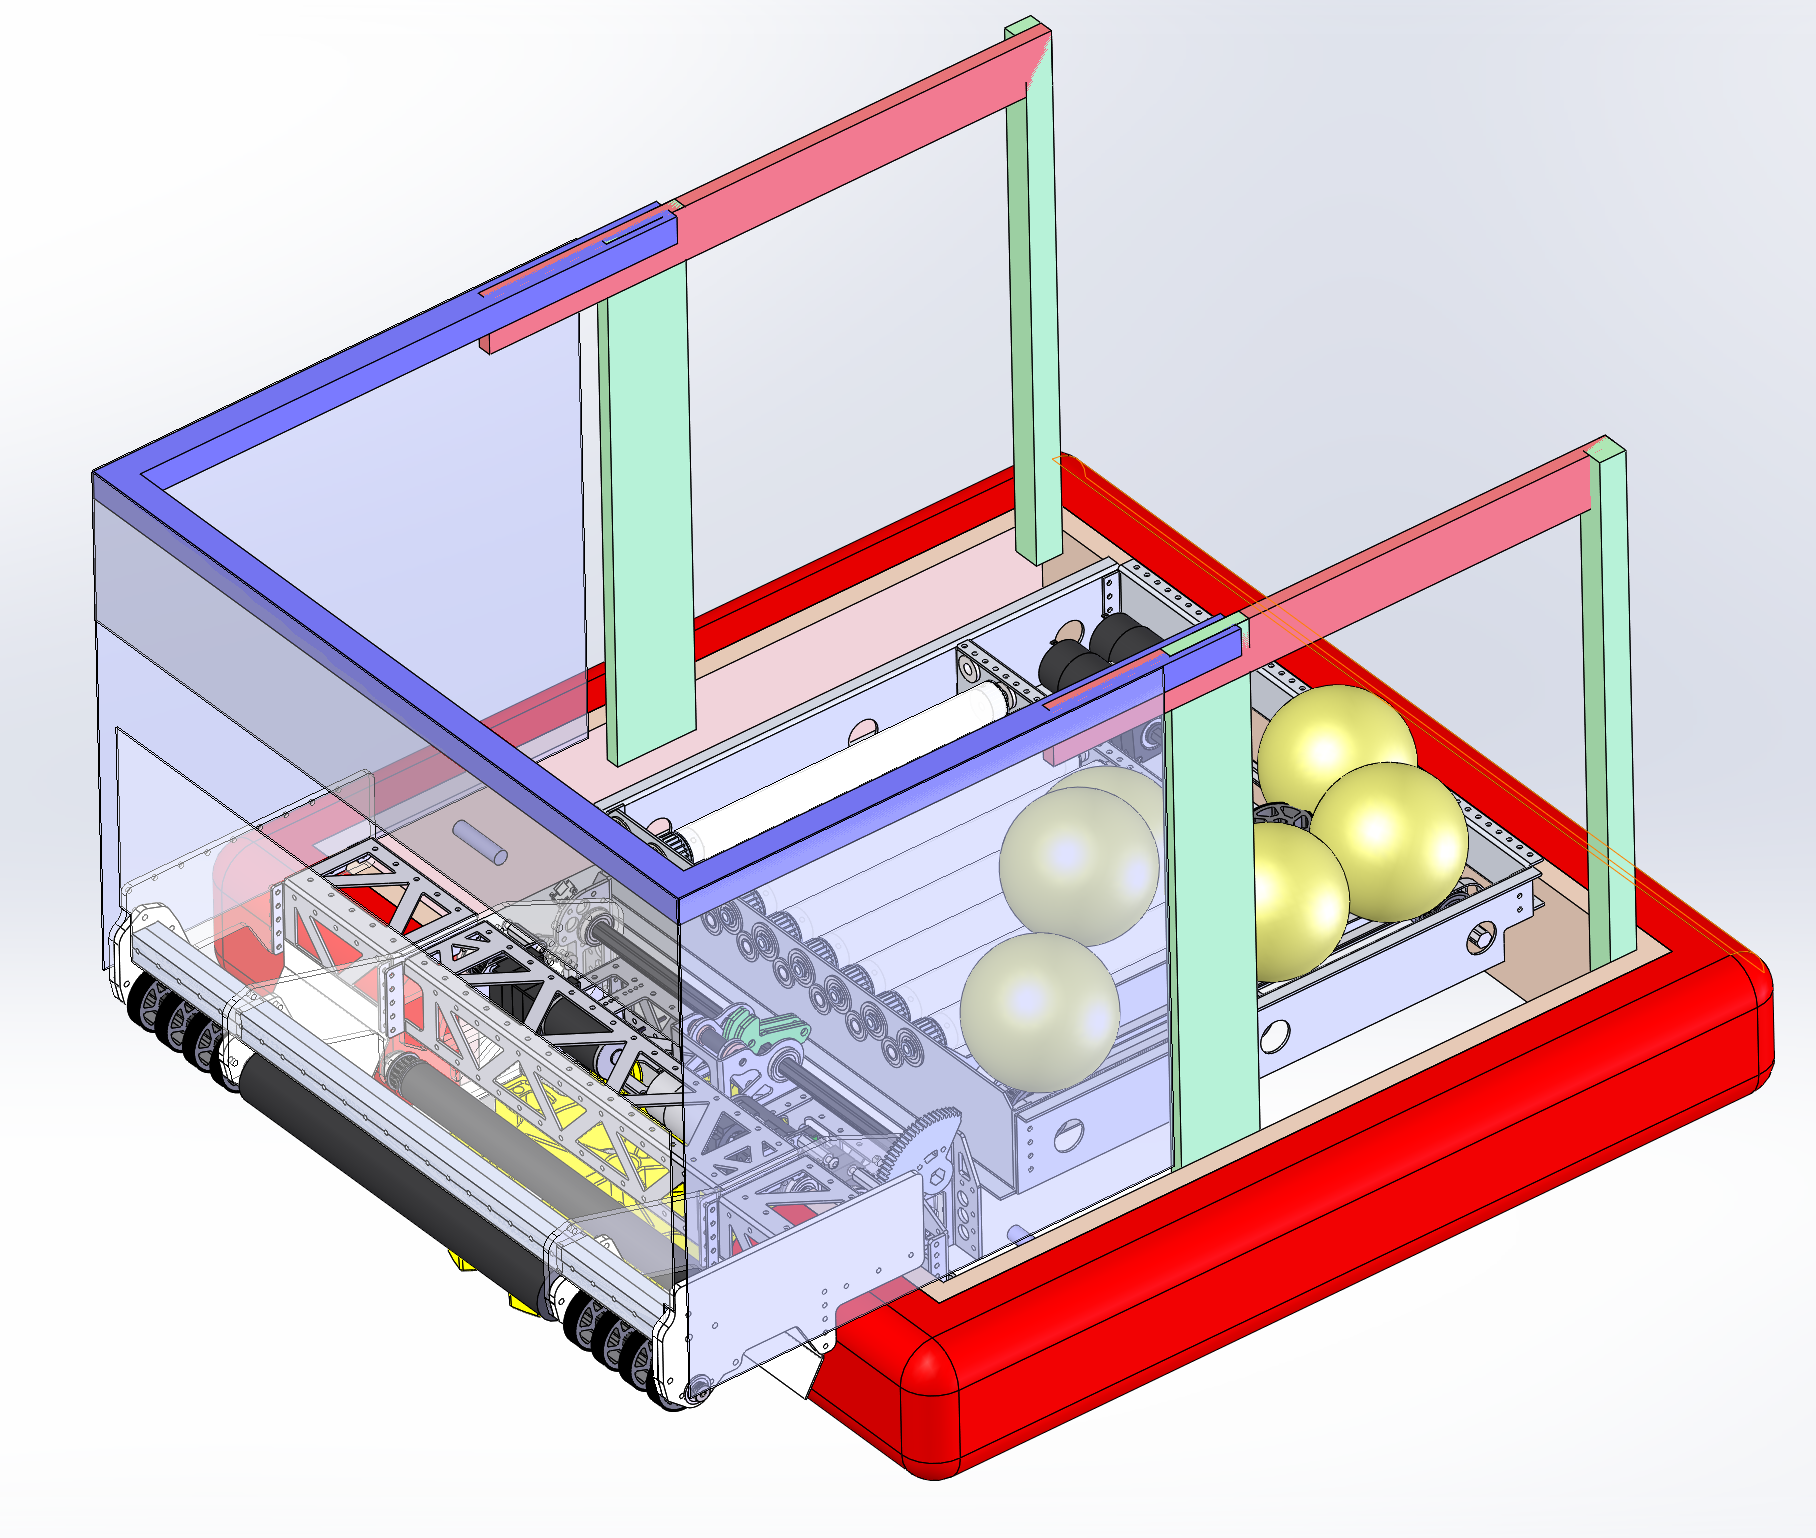 """The blue and red pieces were mated in the SOLIDWORKS assembly such that they """"slide"""" on each other. Simulating a linear motion component (to be designed later)."""